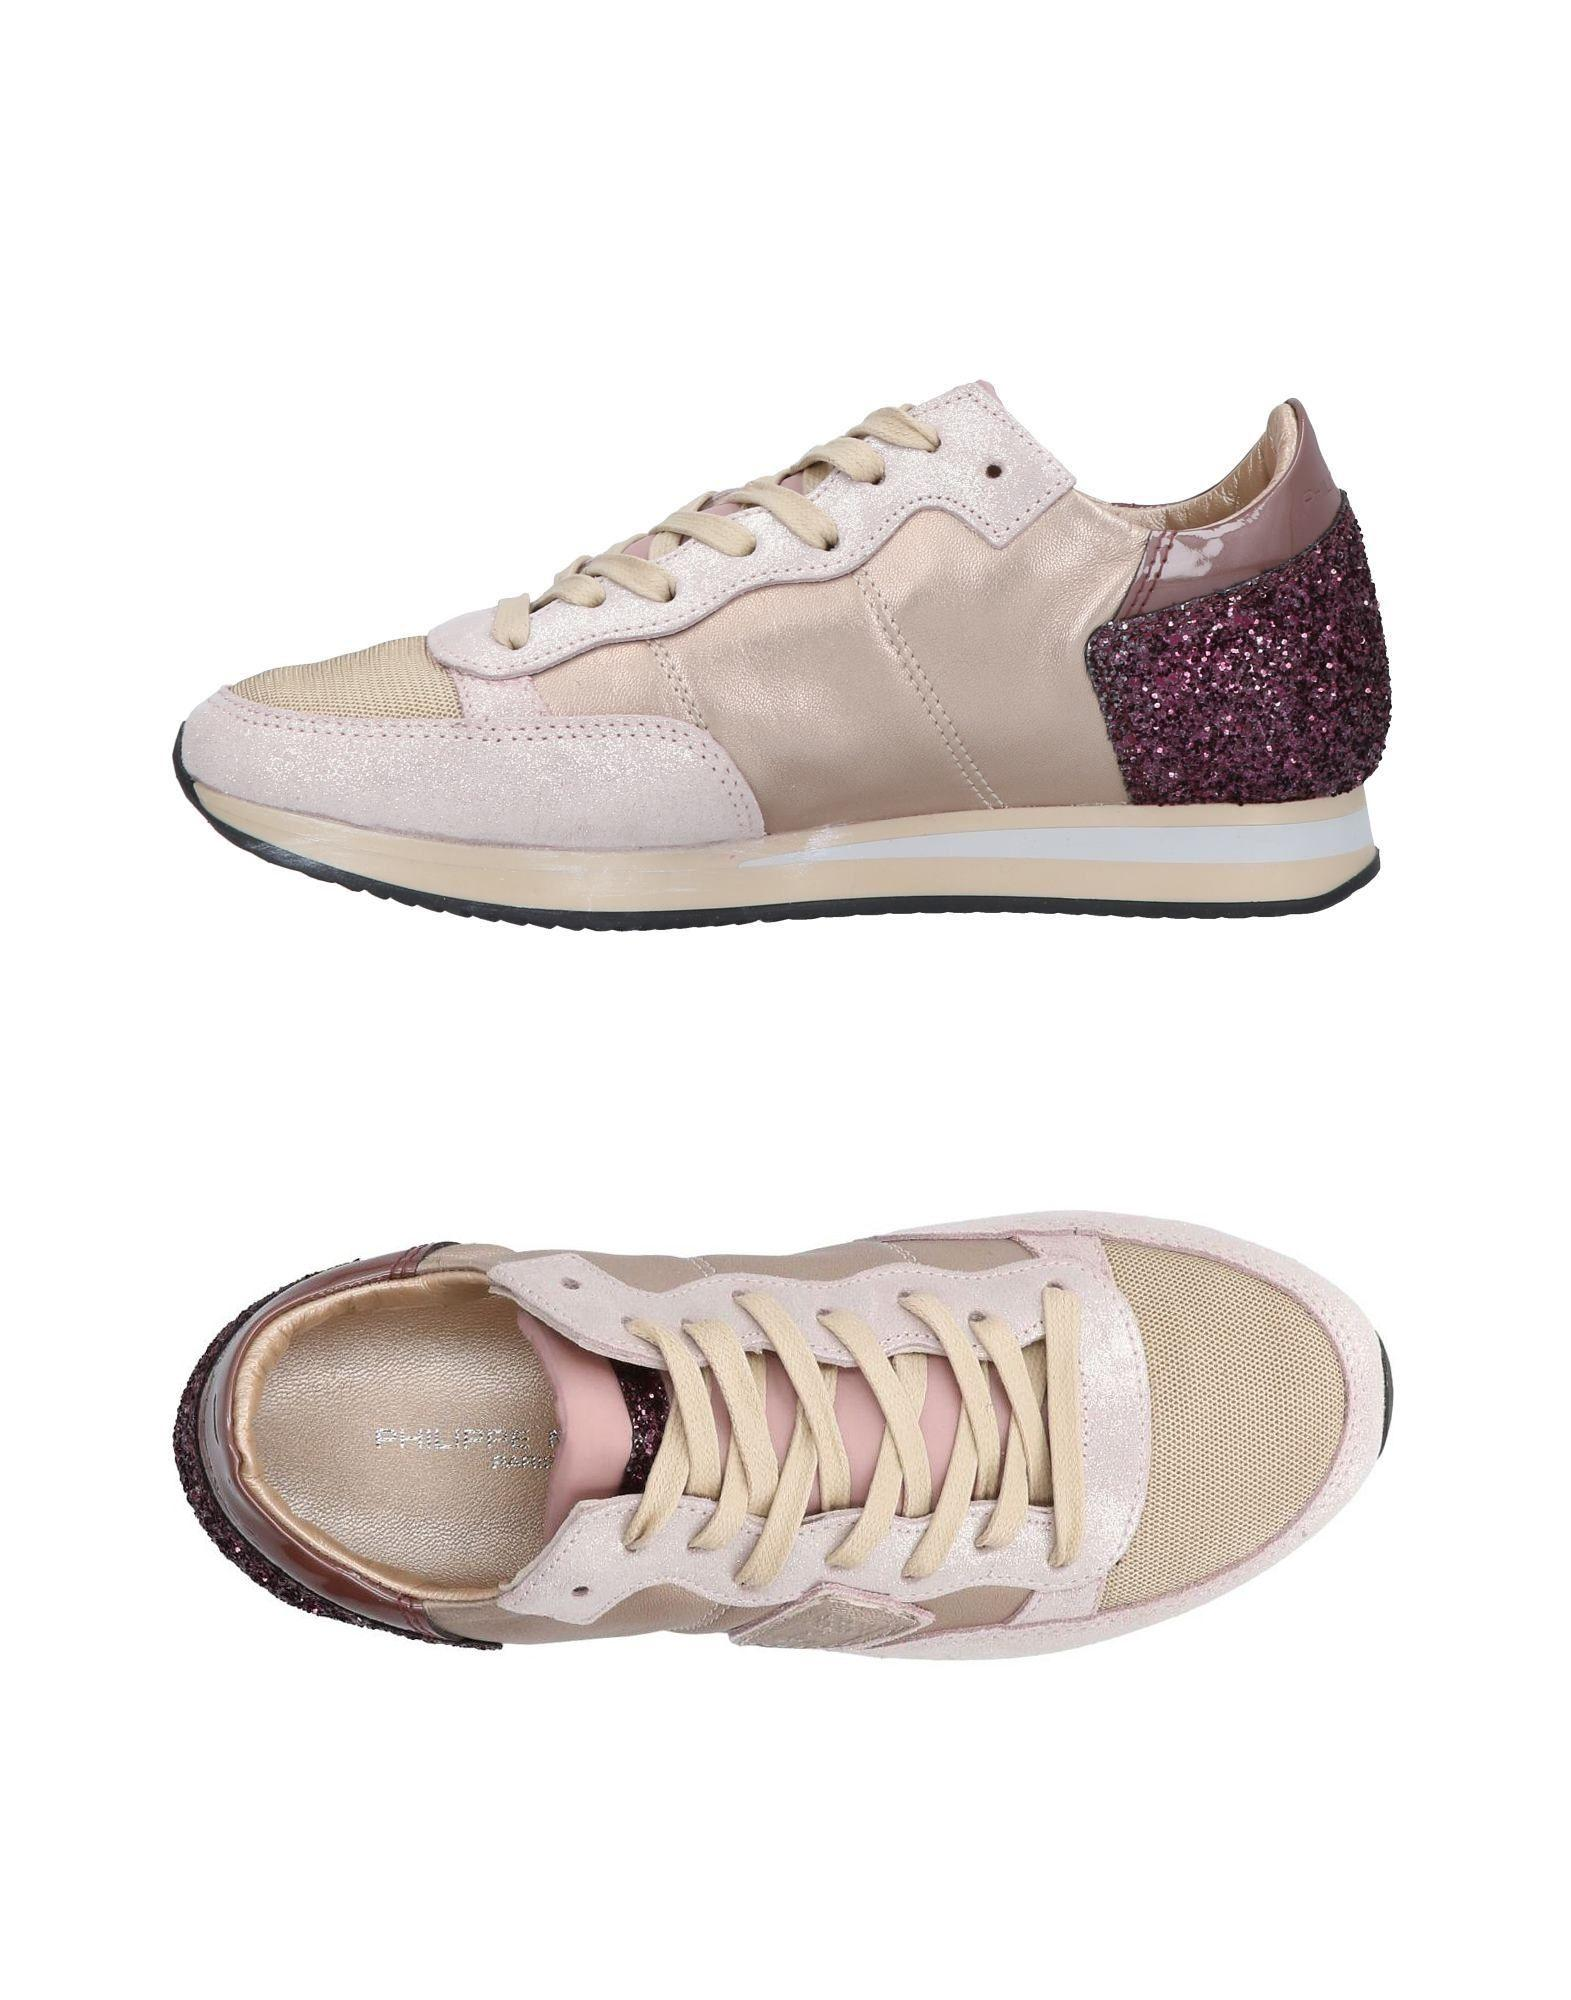 Philippe Model Sneakers In Sand